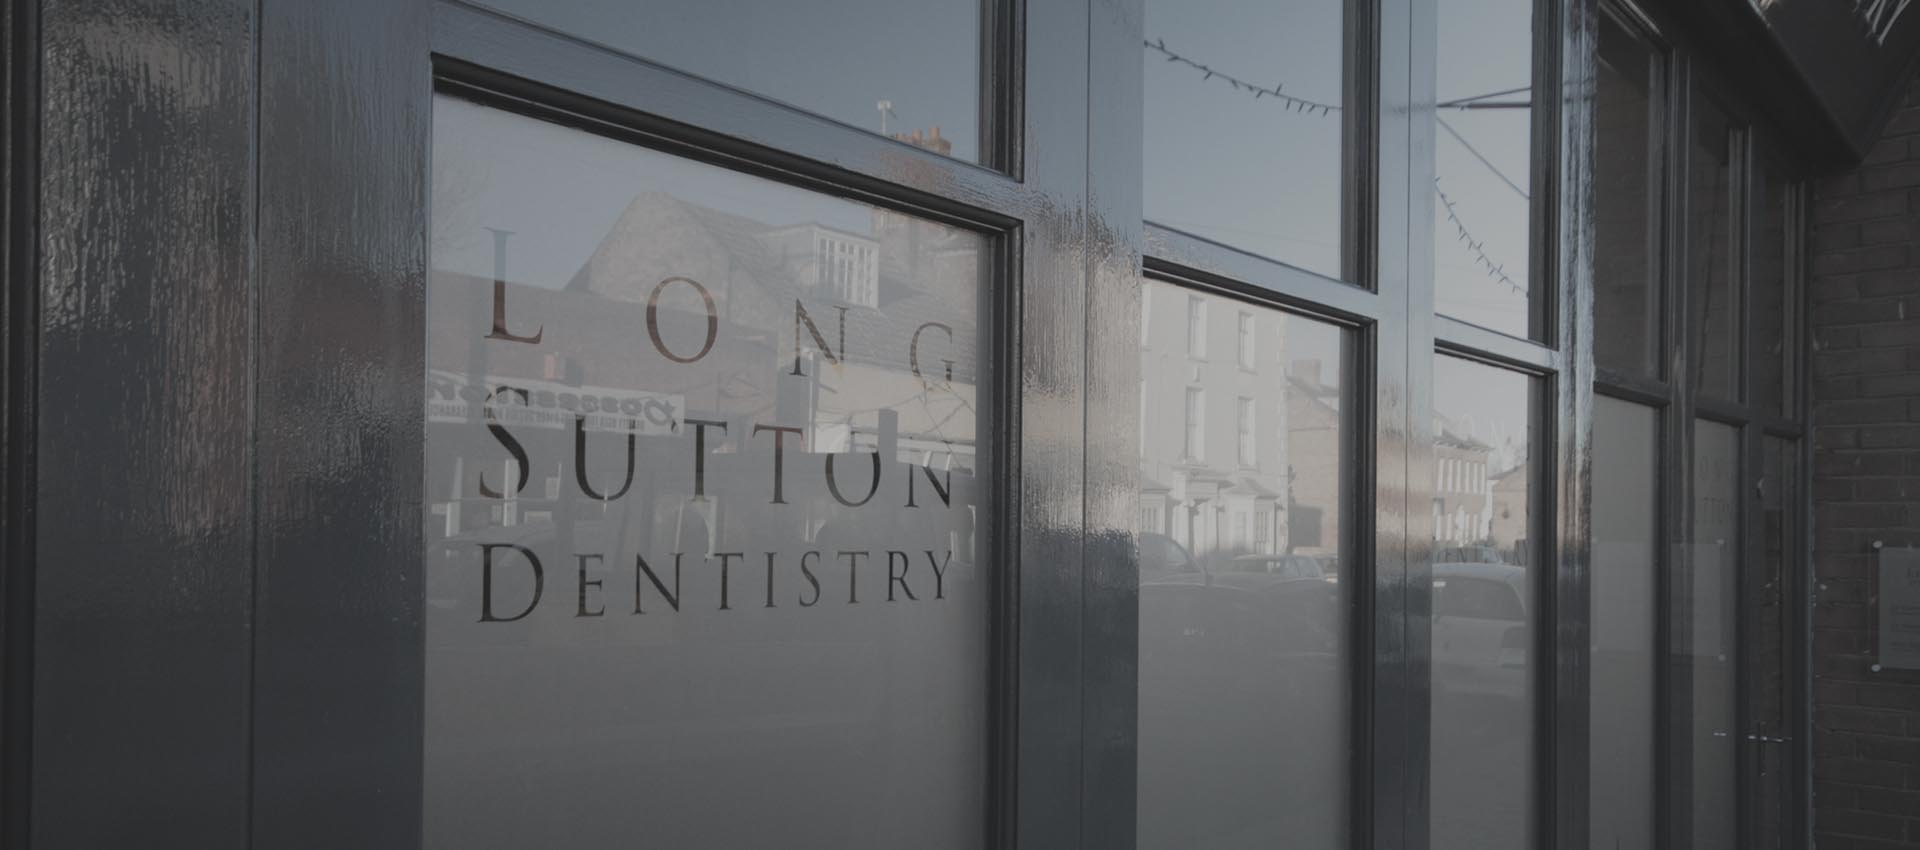 private dental care long sutton spalding